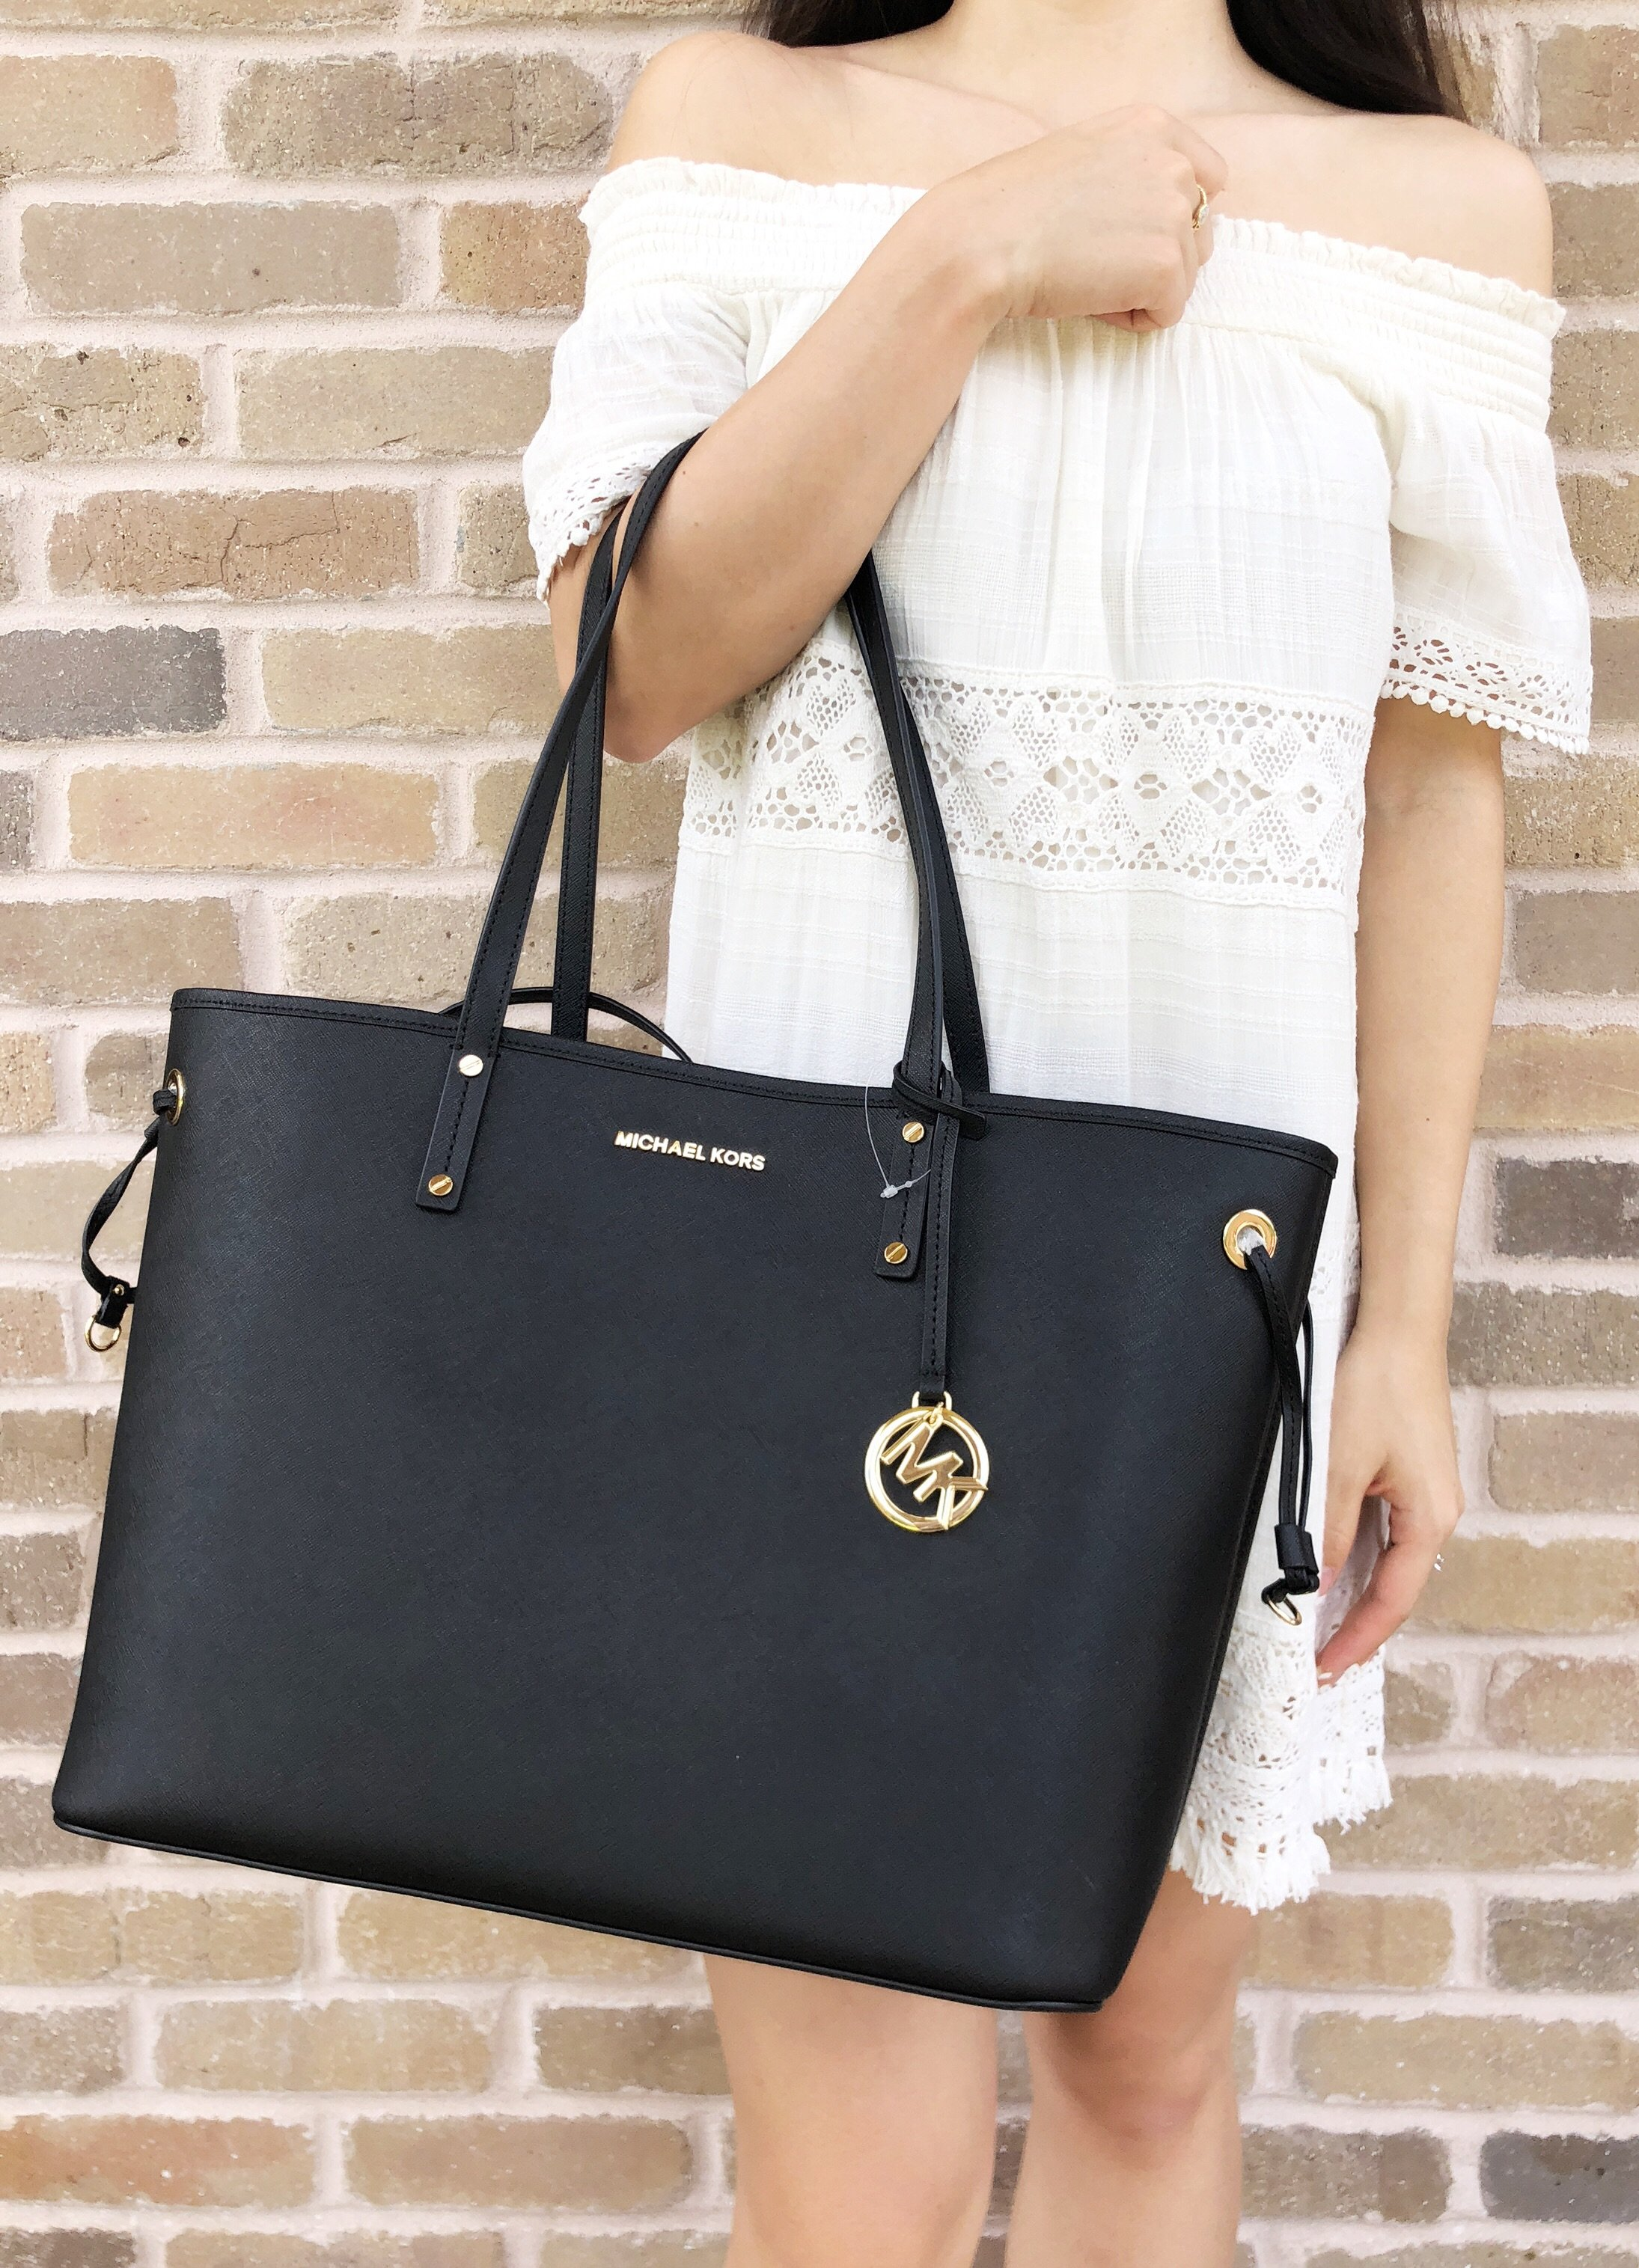 09f6a278be Details about Michael Kors Jet Set Travel Large Drawstring Tote Black  Leather Pouch